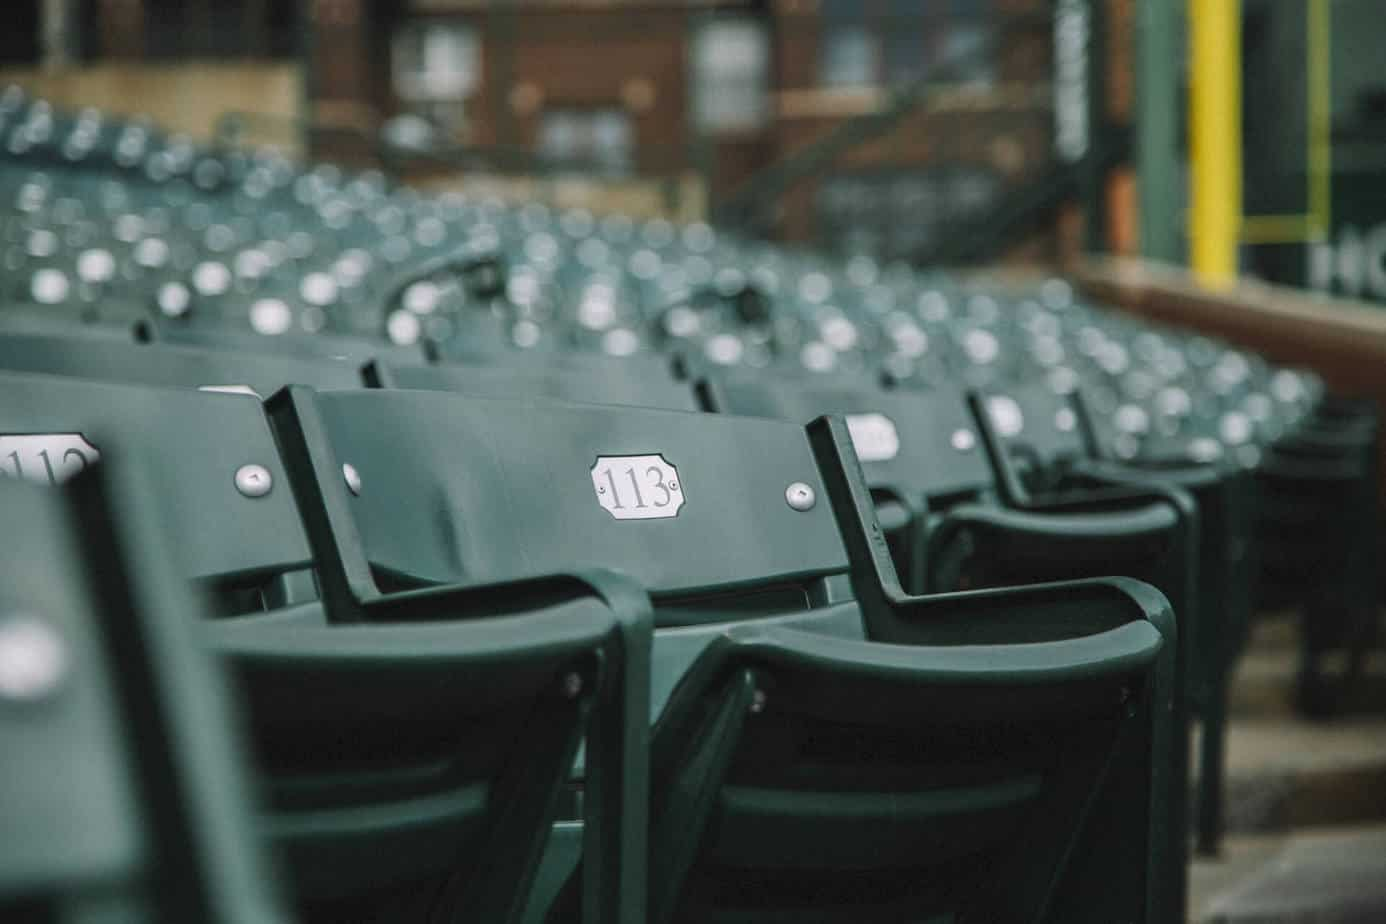 Bartman Seat at Wrigley Field